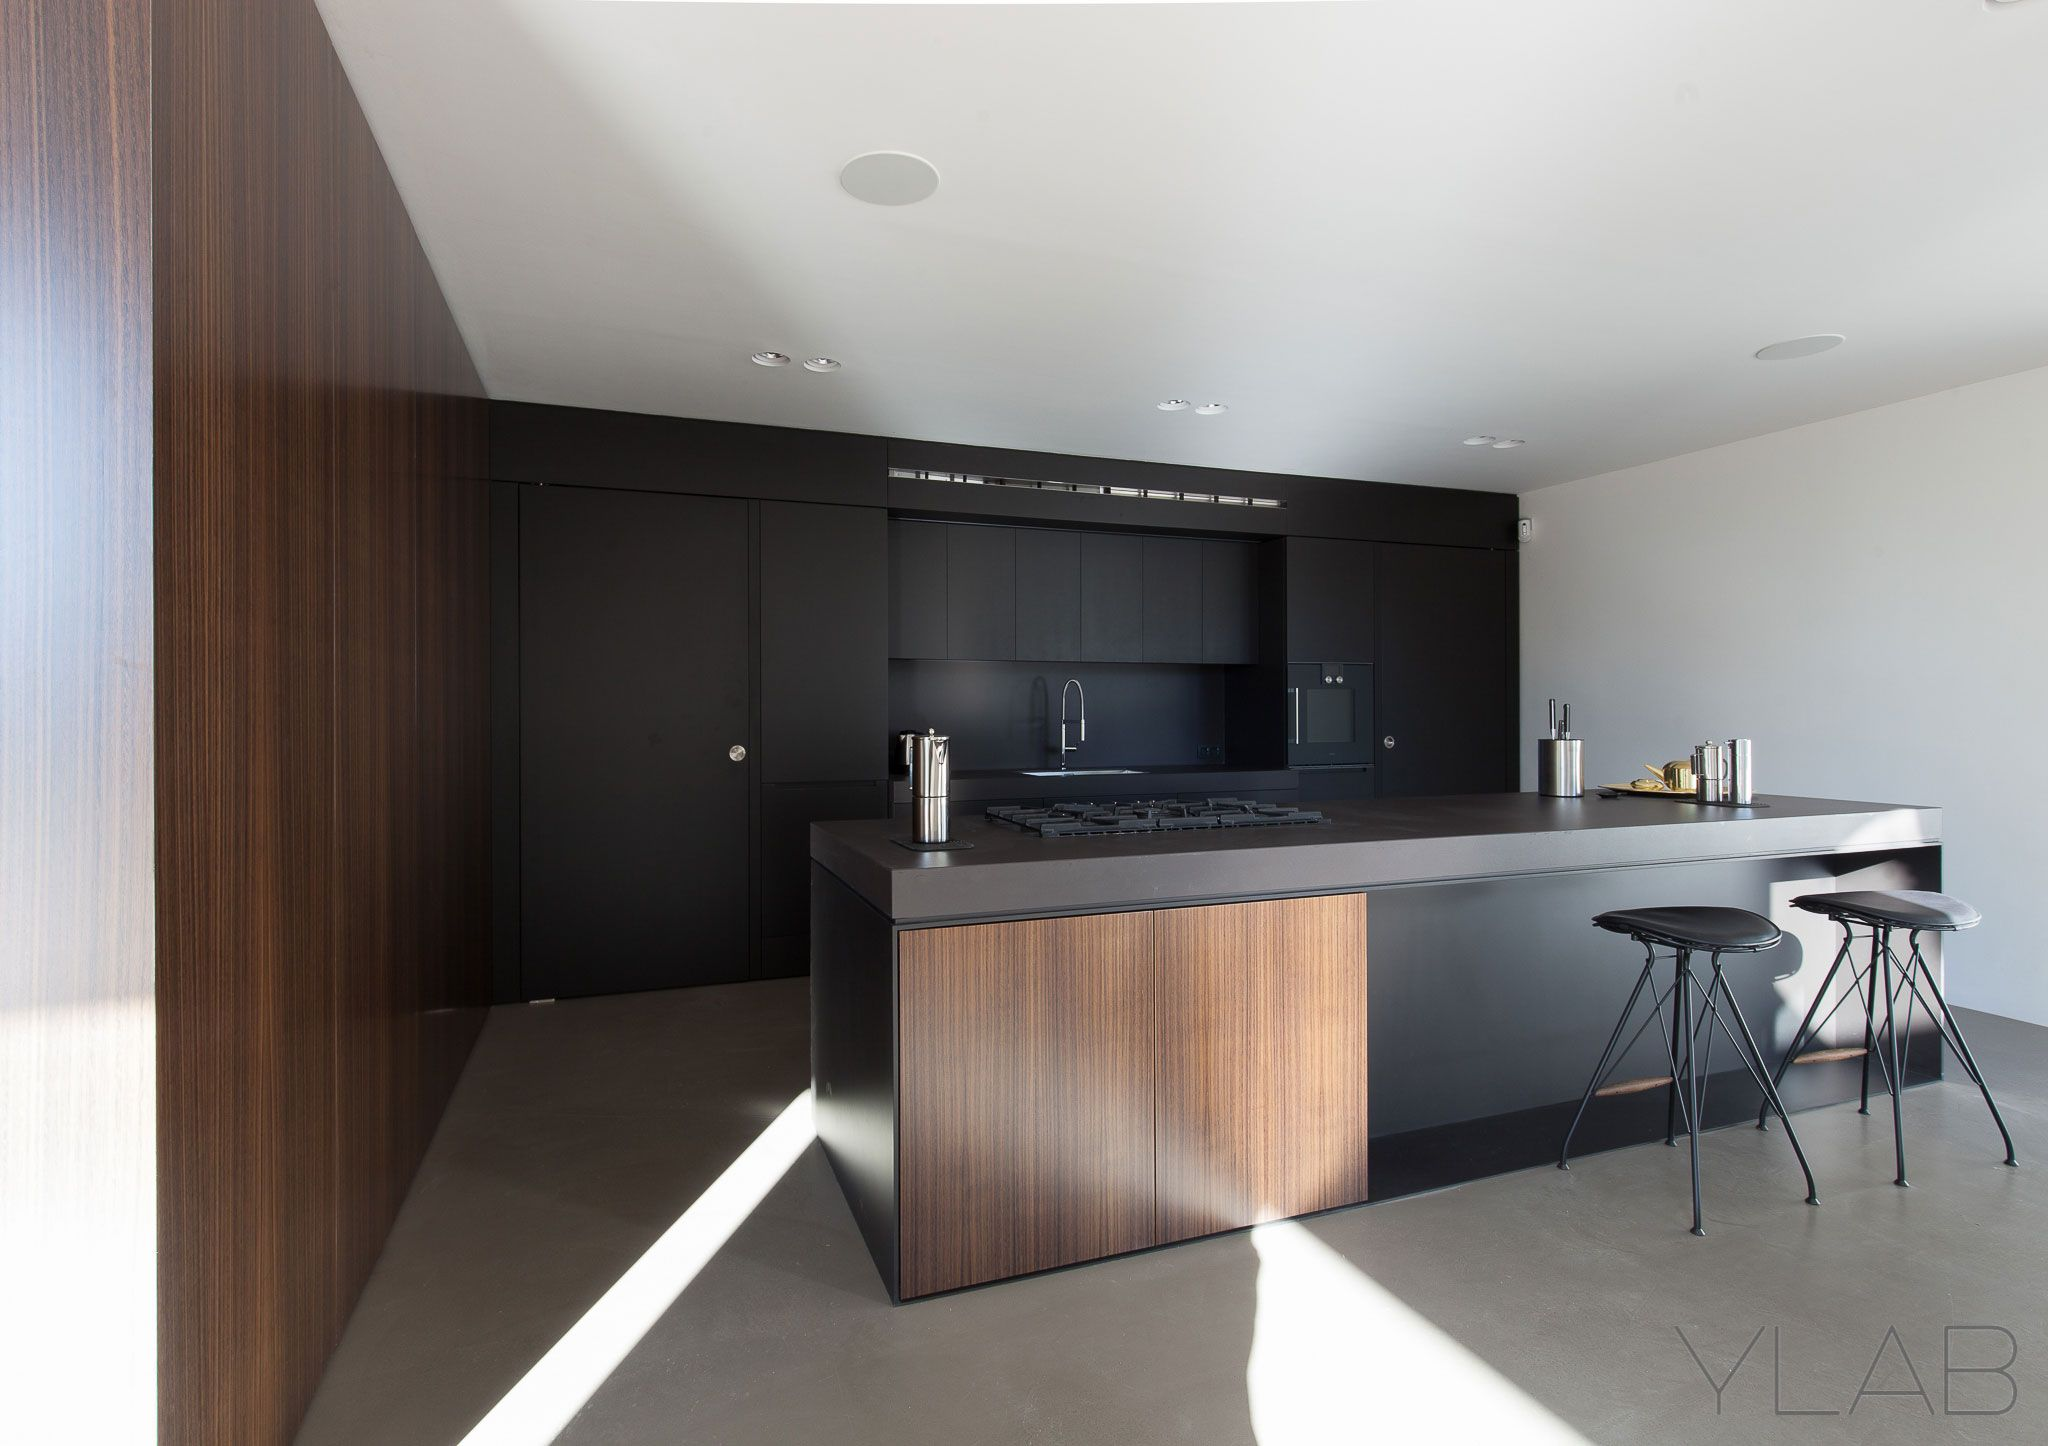 YLAB Arquitectos Barcelona Design a Home in Cataluña for a ... on french country kitchen ideas pinterest, mexican kitchen ideas pinterest, traditional kitchen ideas pinterest, modern kitchen ideas pinterest,